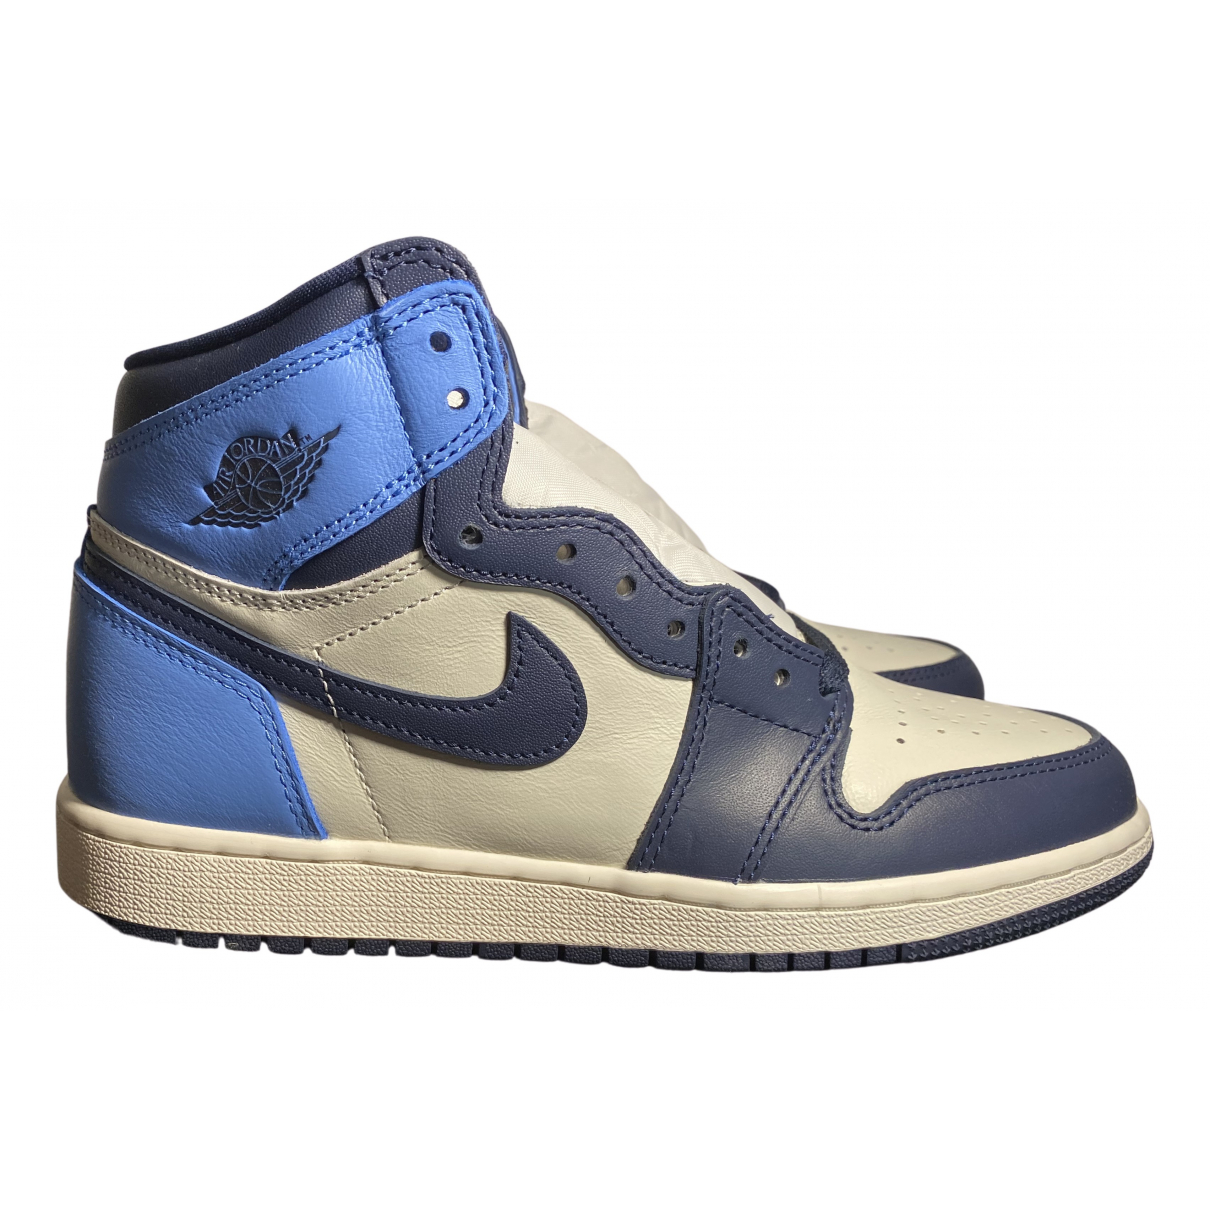 Jordan Air Jordan 1  Blue Leather Trainers for Women 7 US